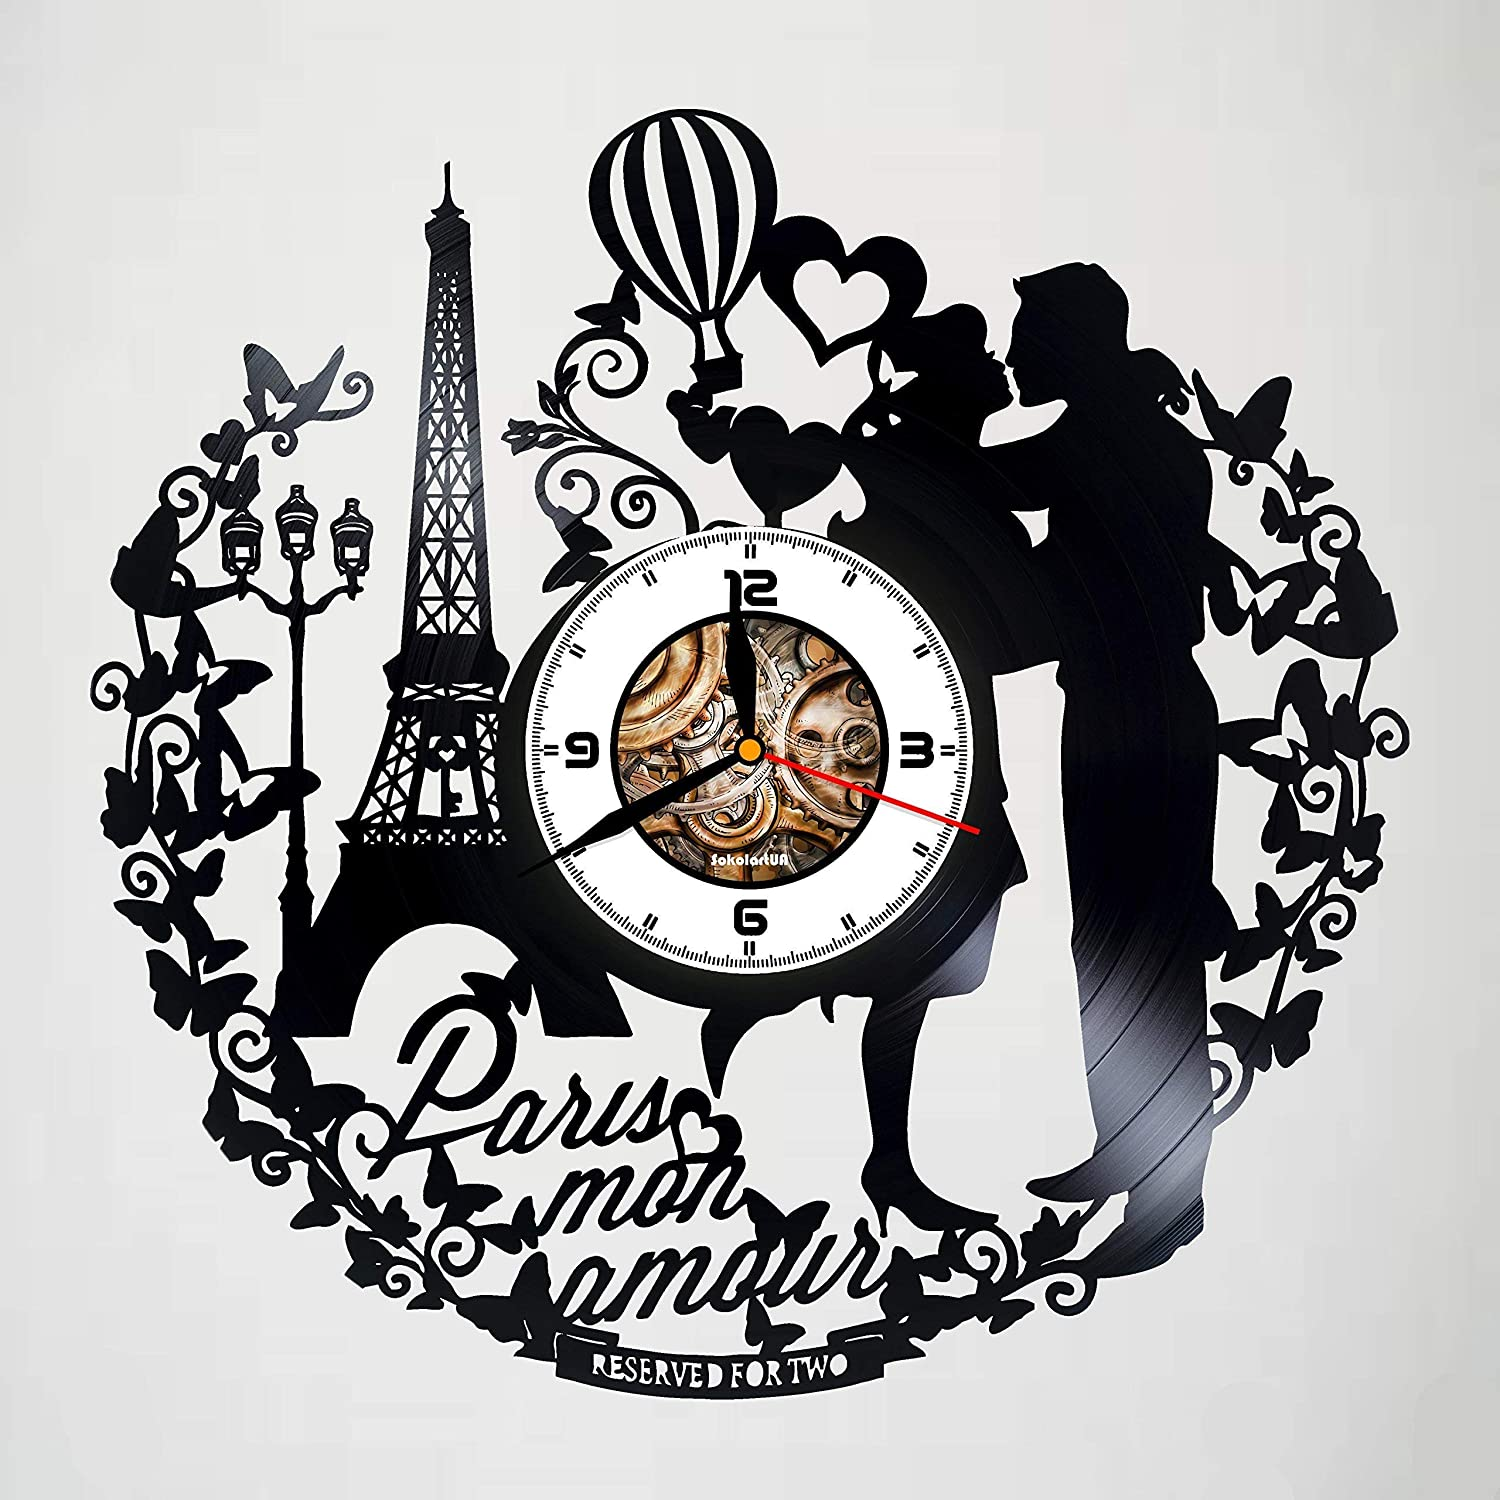 Laser Cut Paris France Mon Amour Vinyl Record Wall Clock Free DXF File